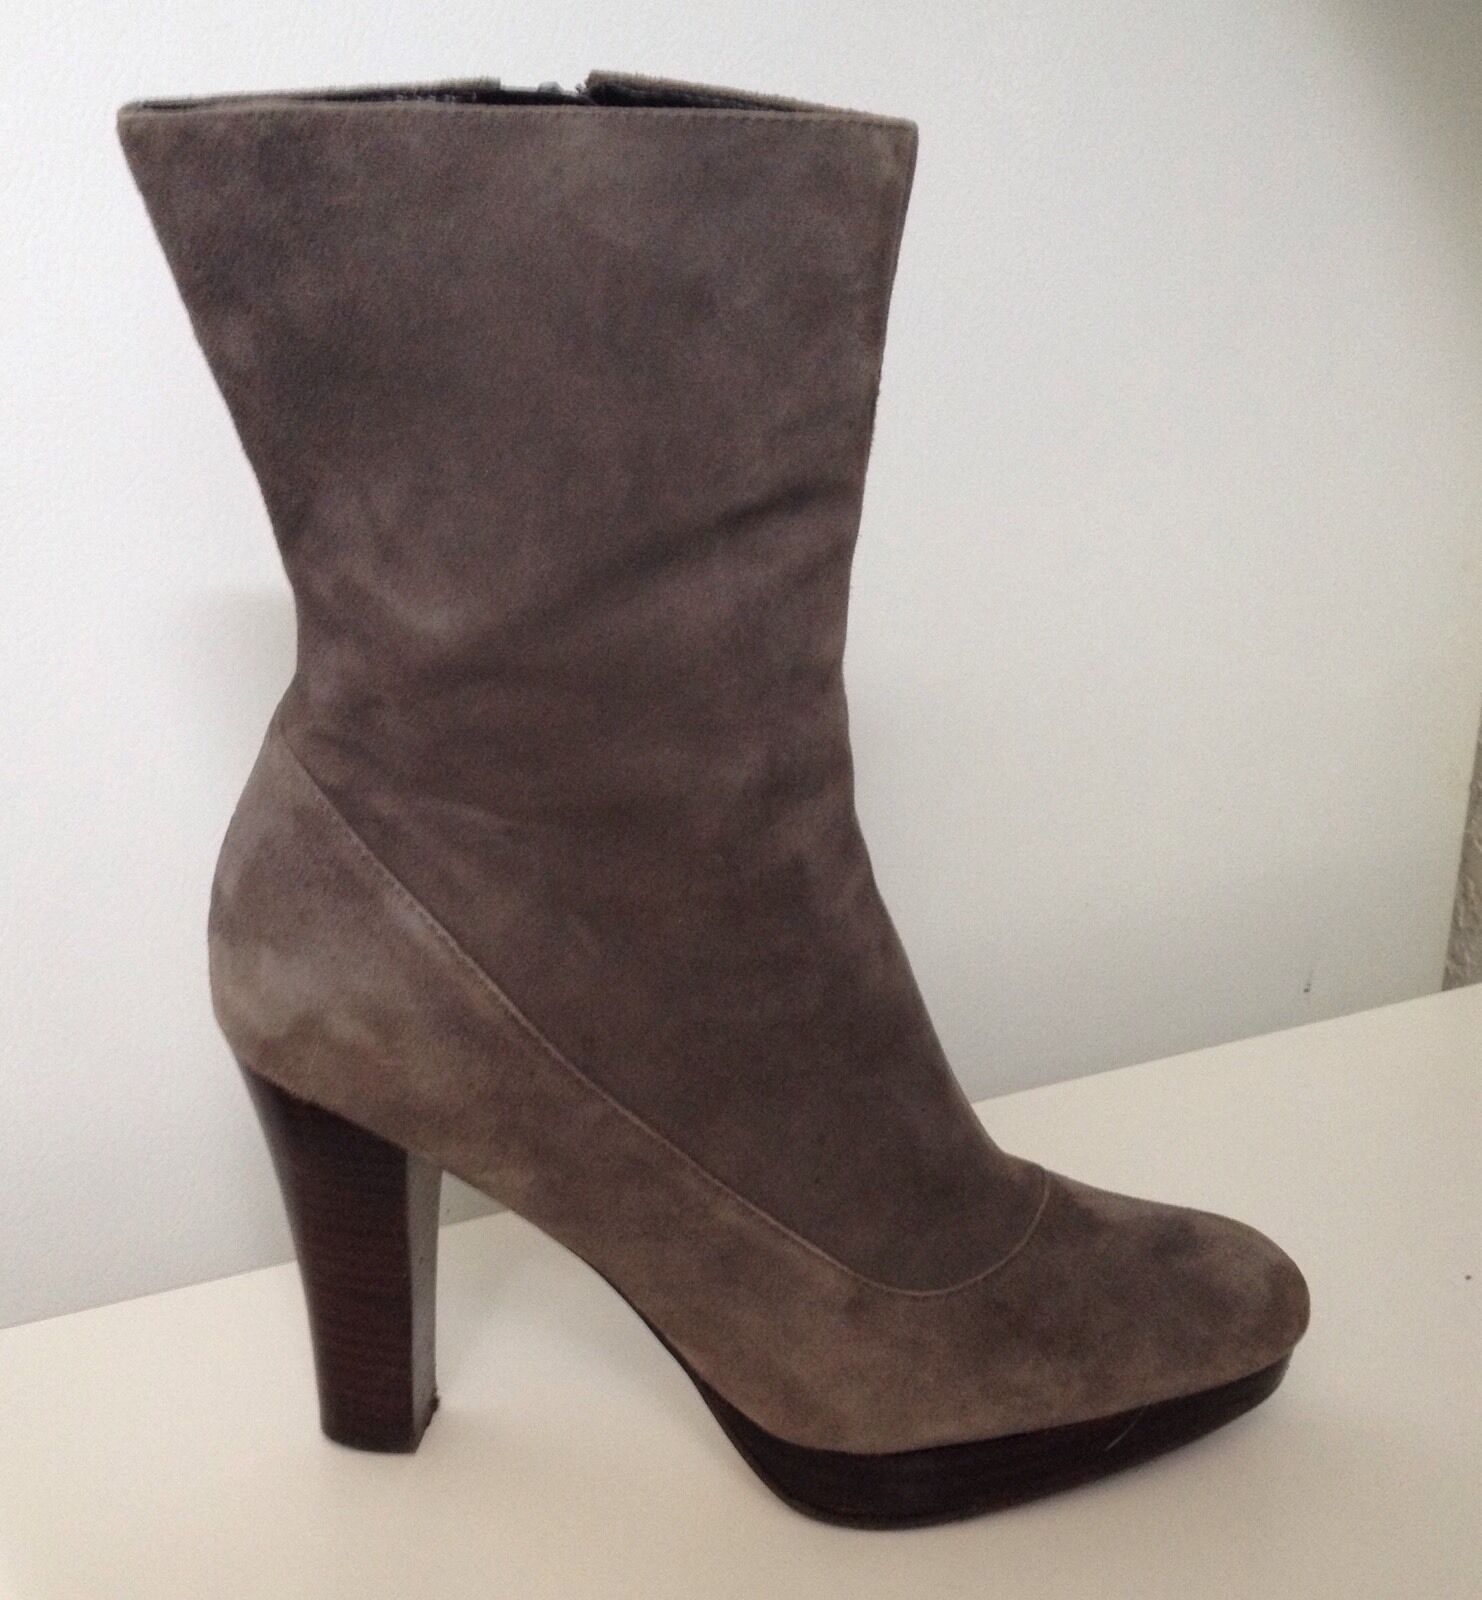 Nine Boots West Woman's Gray Suede Boots Nine - Size 7 f493f0